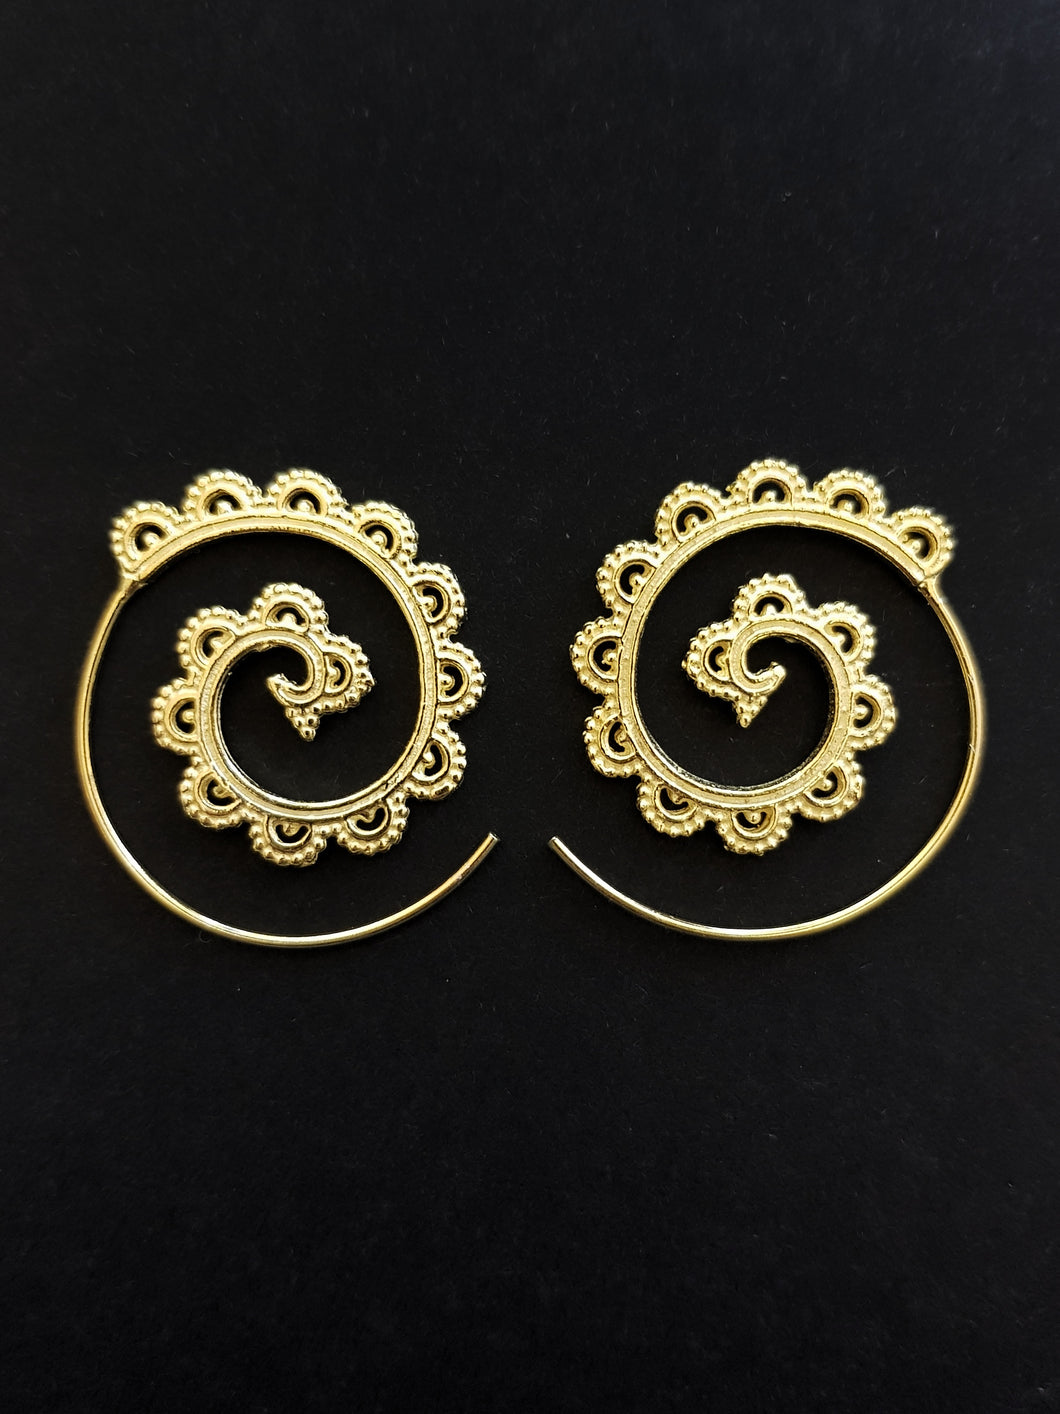 Gold Plated Filigree Spiral Earrings